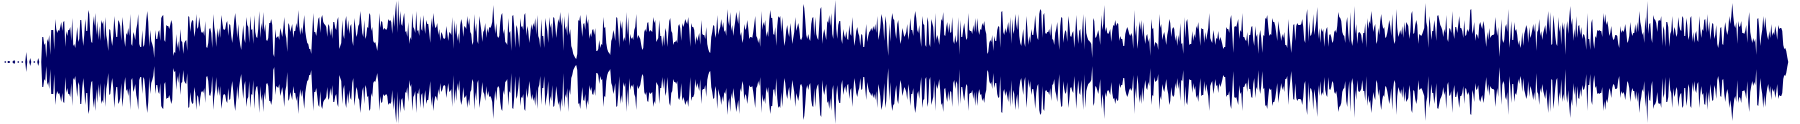 waveform of track #81392